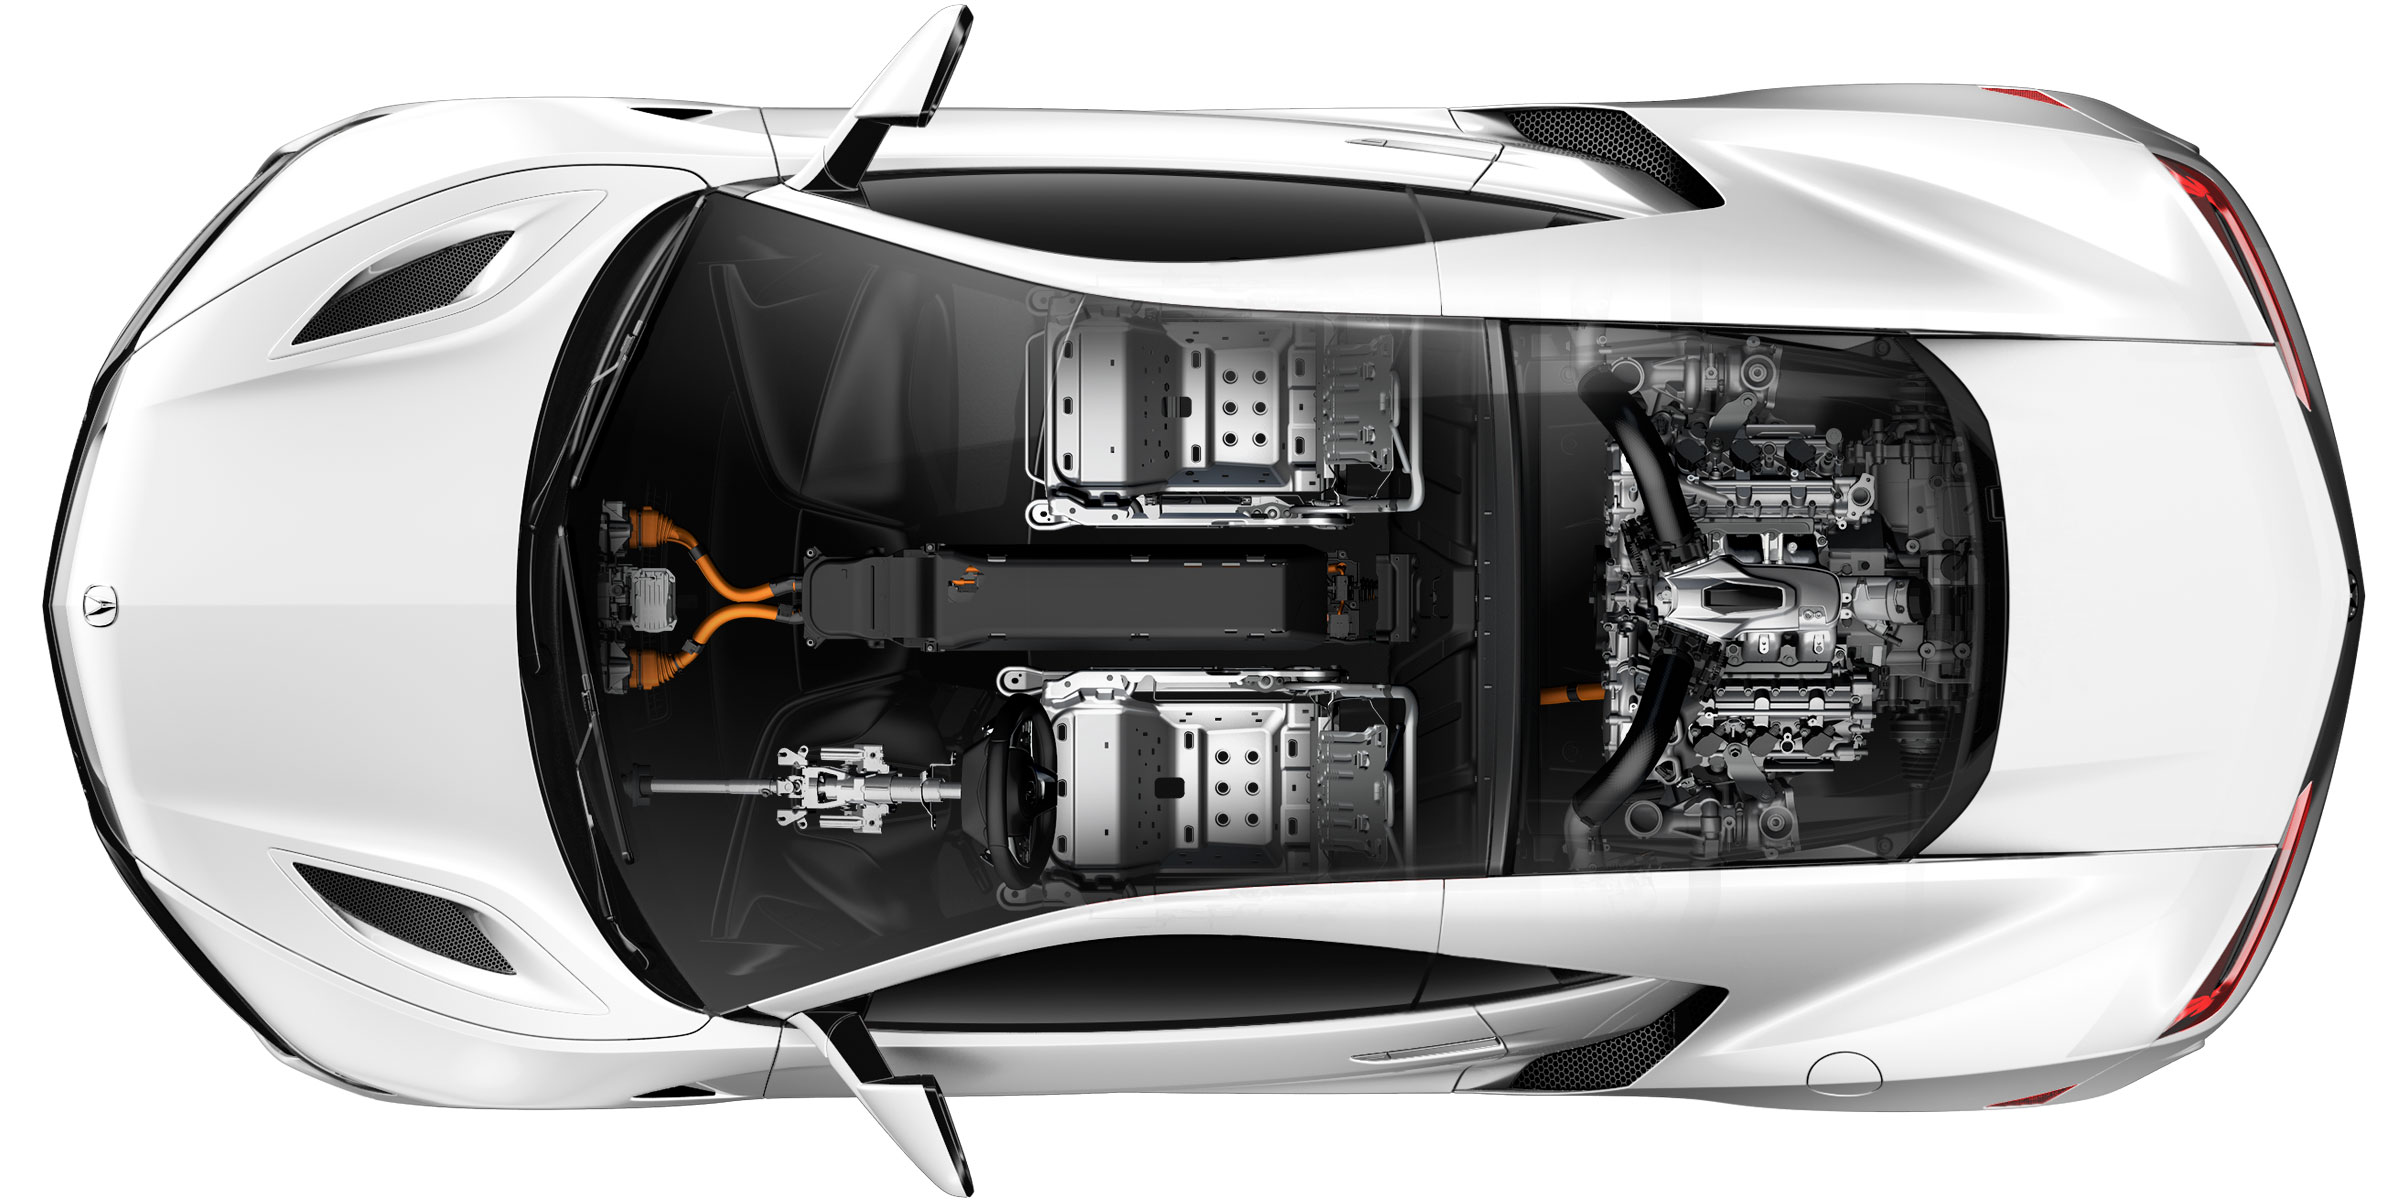 2018 honda nsx gt3. plain nsx performance car of the year acura nsx xray view revealing internal systems throughout 2018 honda nsx gt3